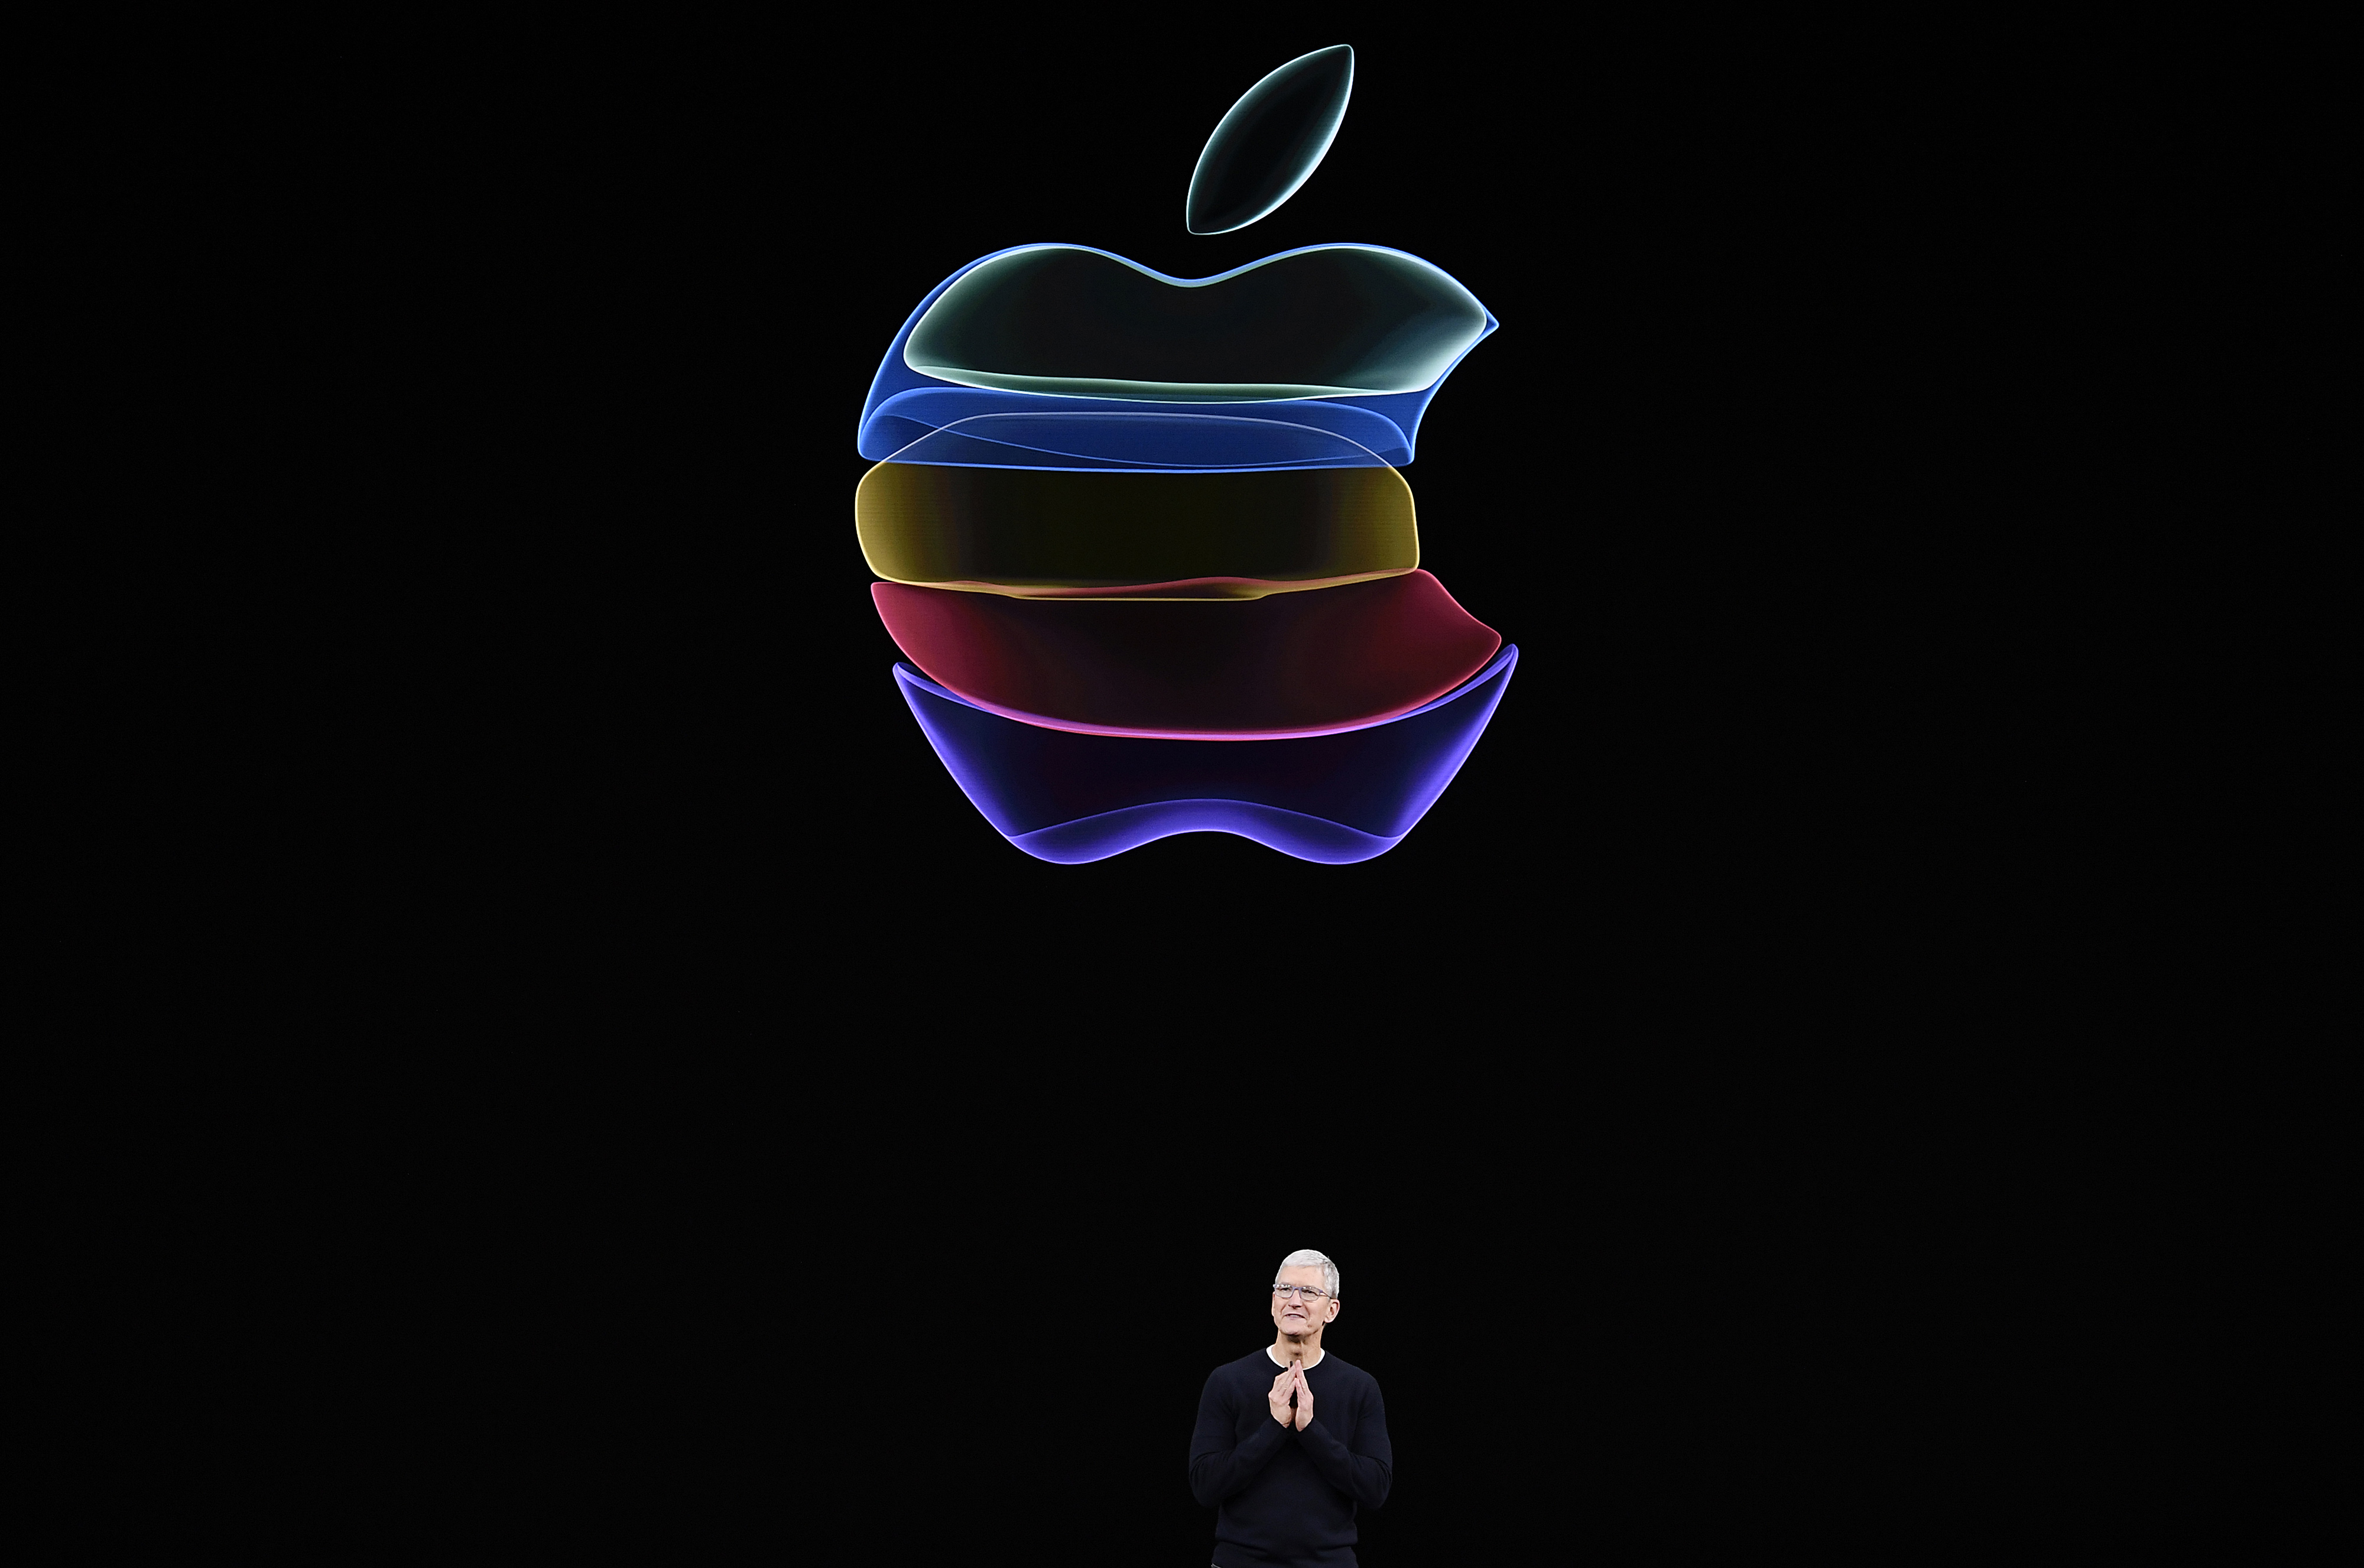 Tim Cook, chief executive of Apple